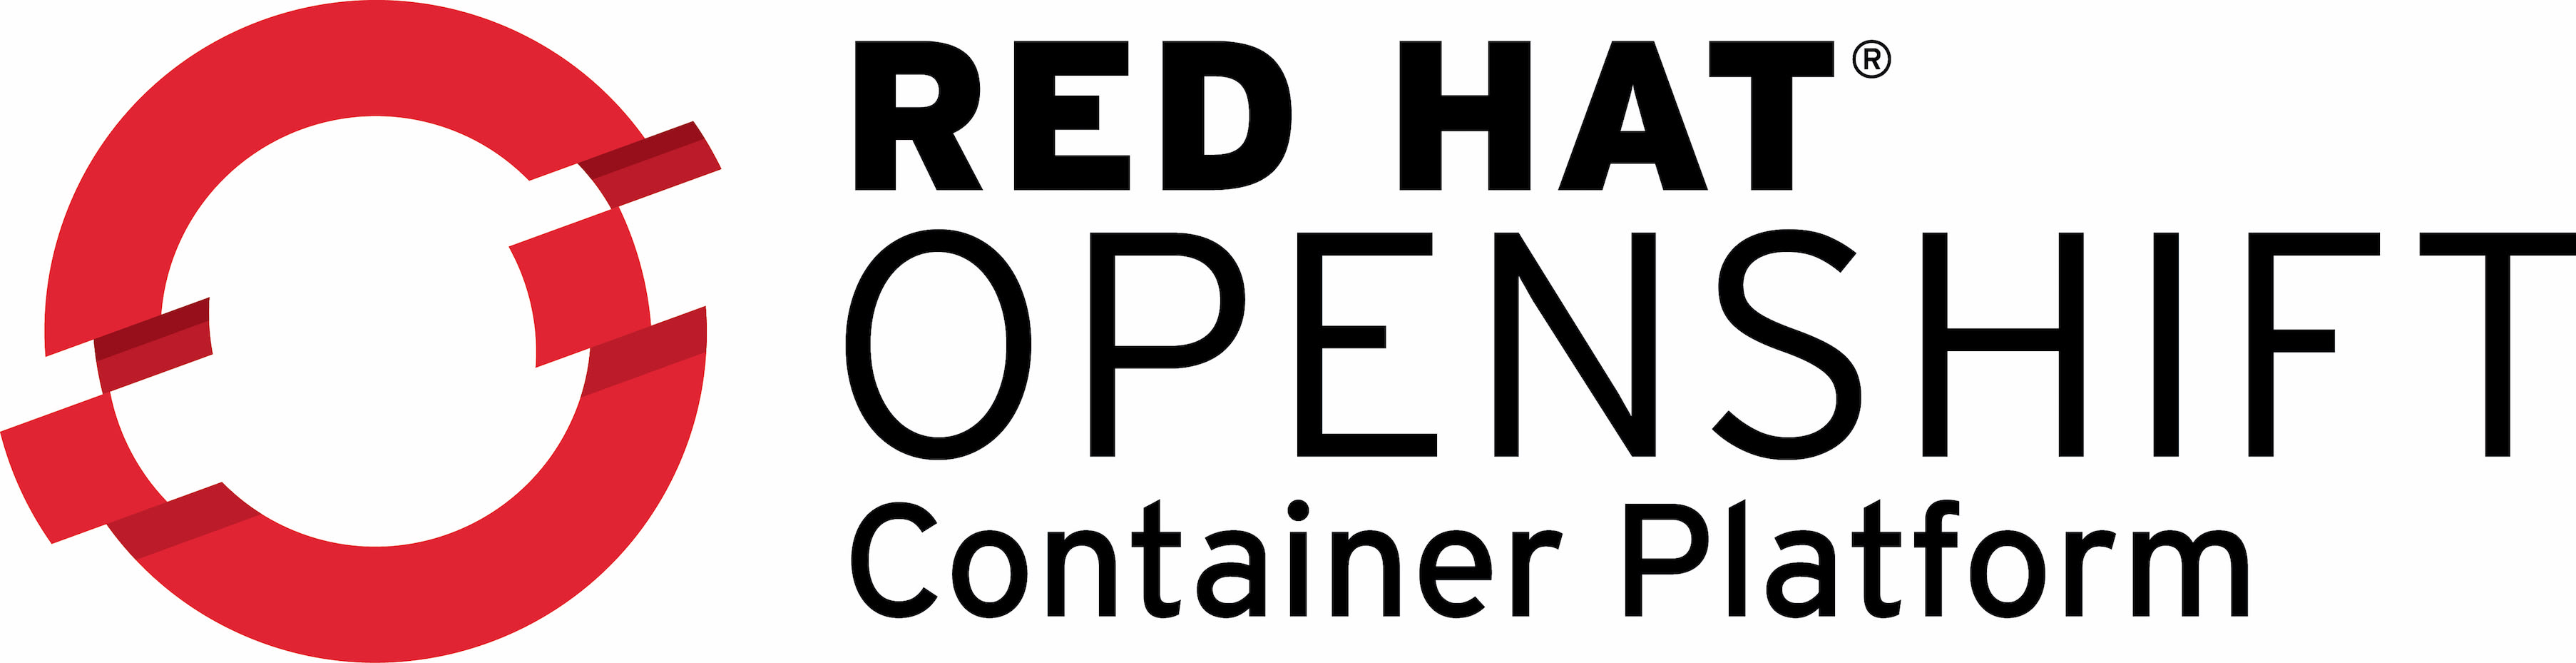 Red Hat Openshift - Container Platform